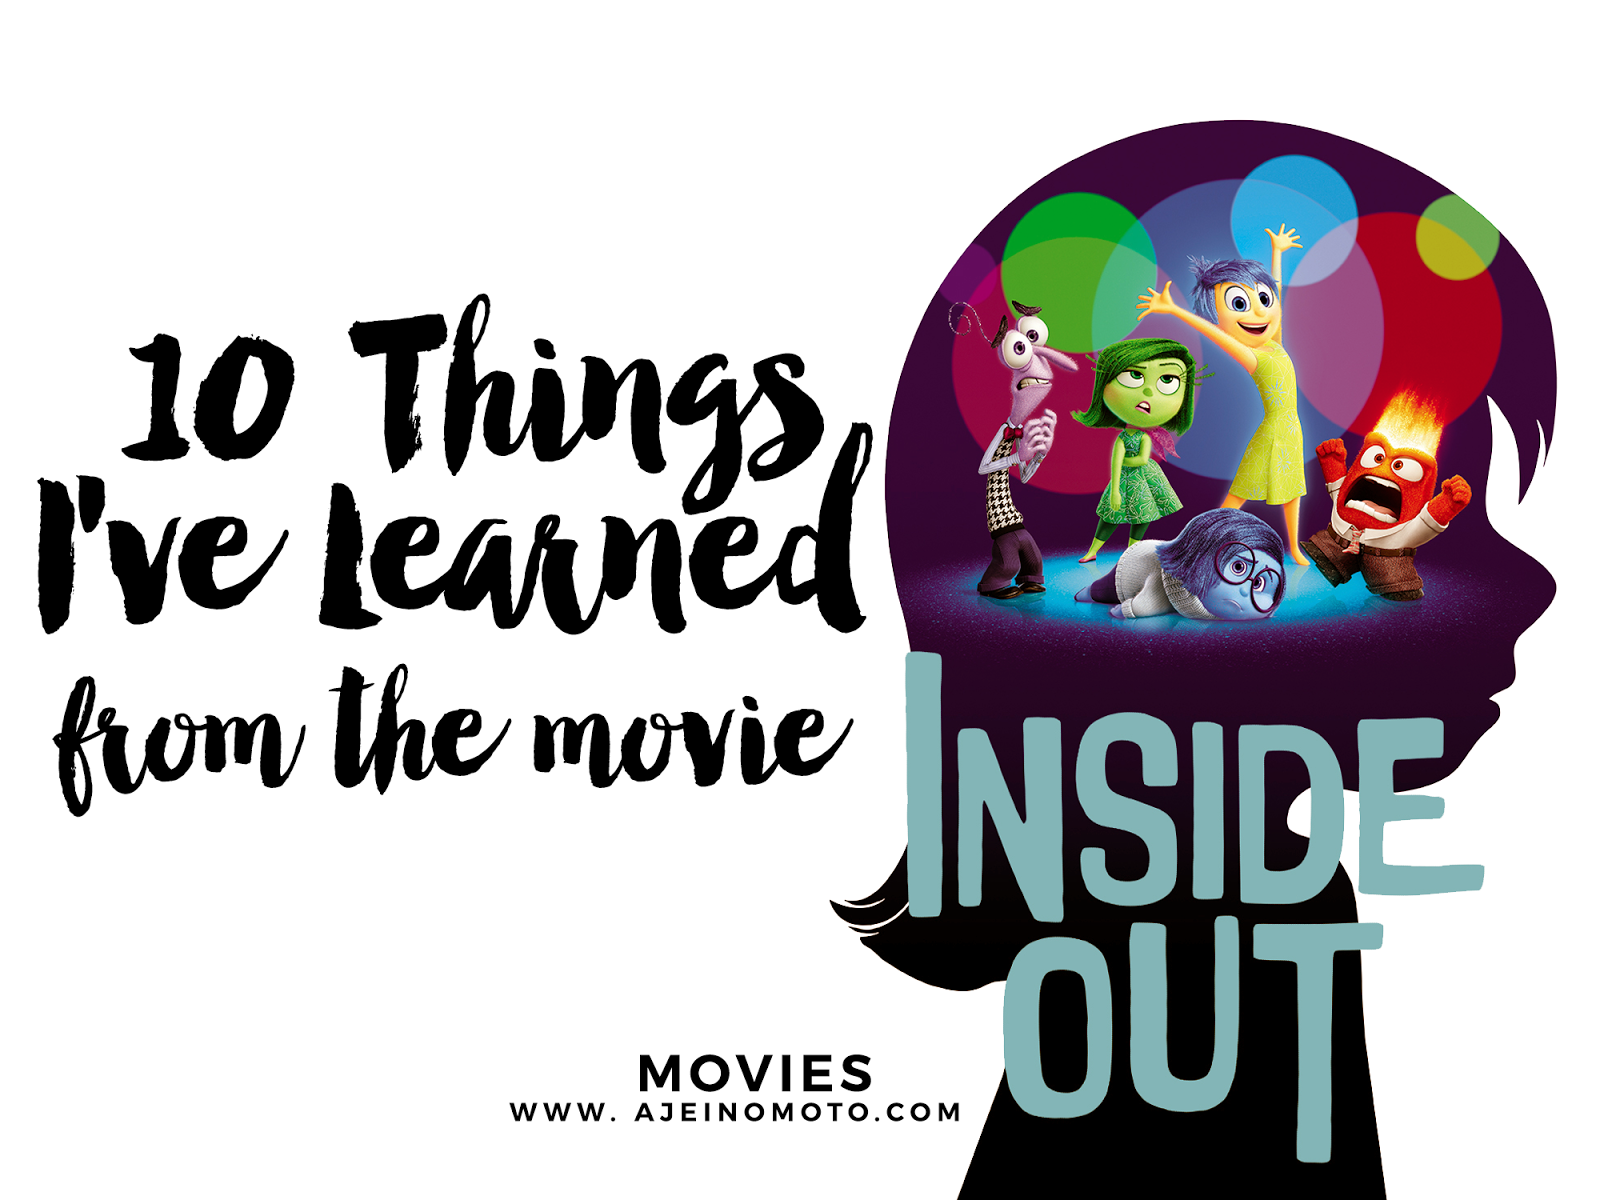 5 Emotional Lessons From the Movie 'Inside Out'